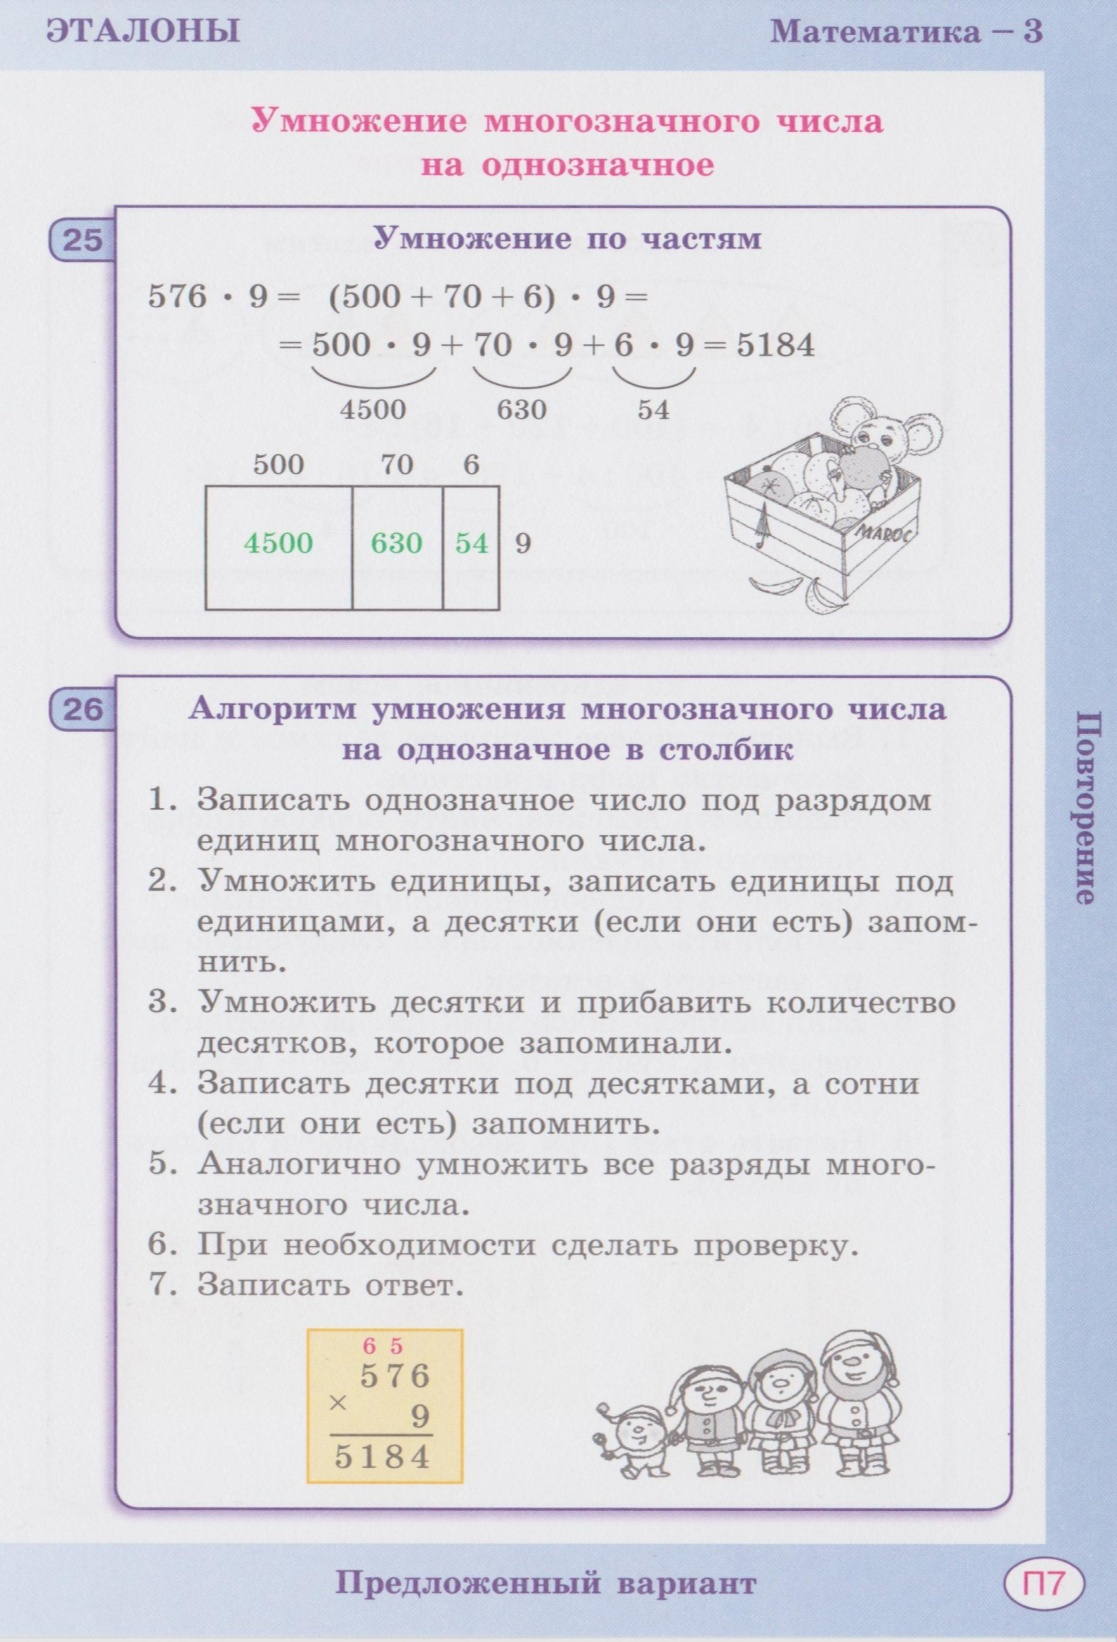 C:\Users\Настя\Pictures\2012-09-08 7\7 001.jpg